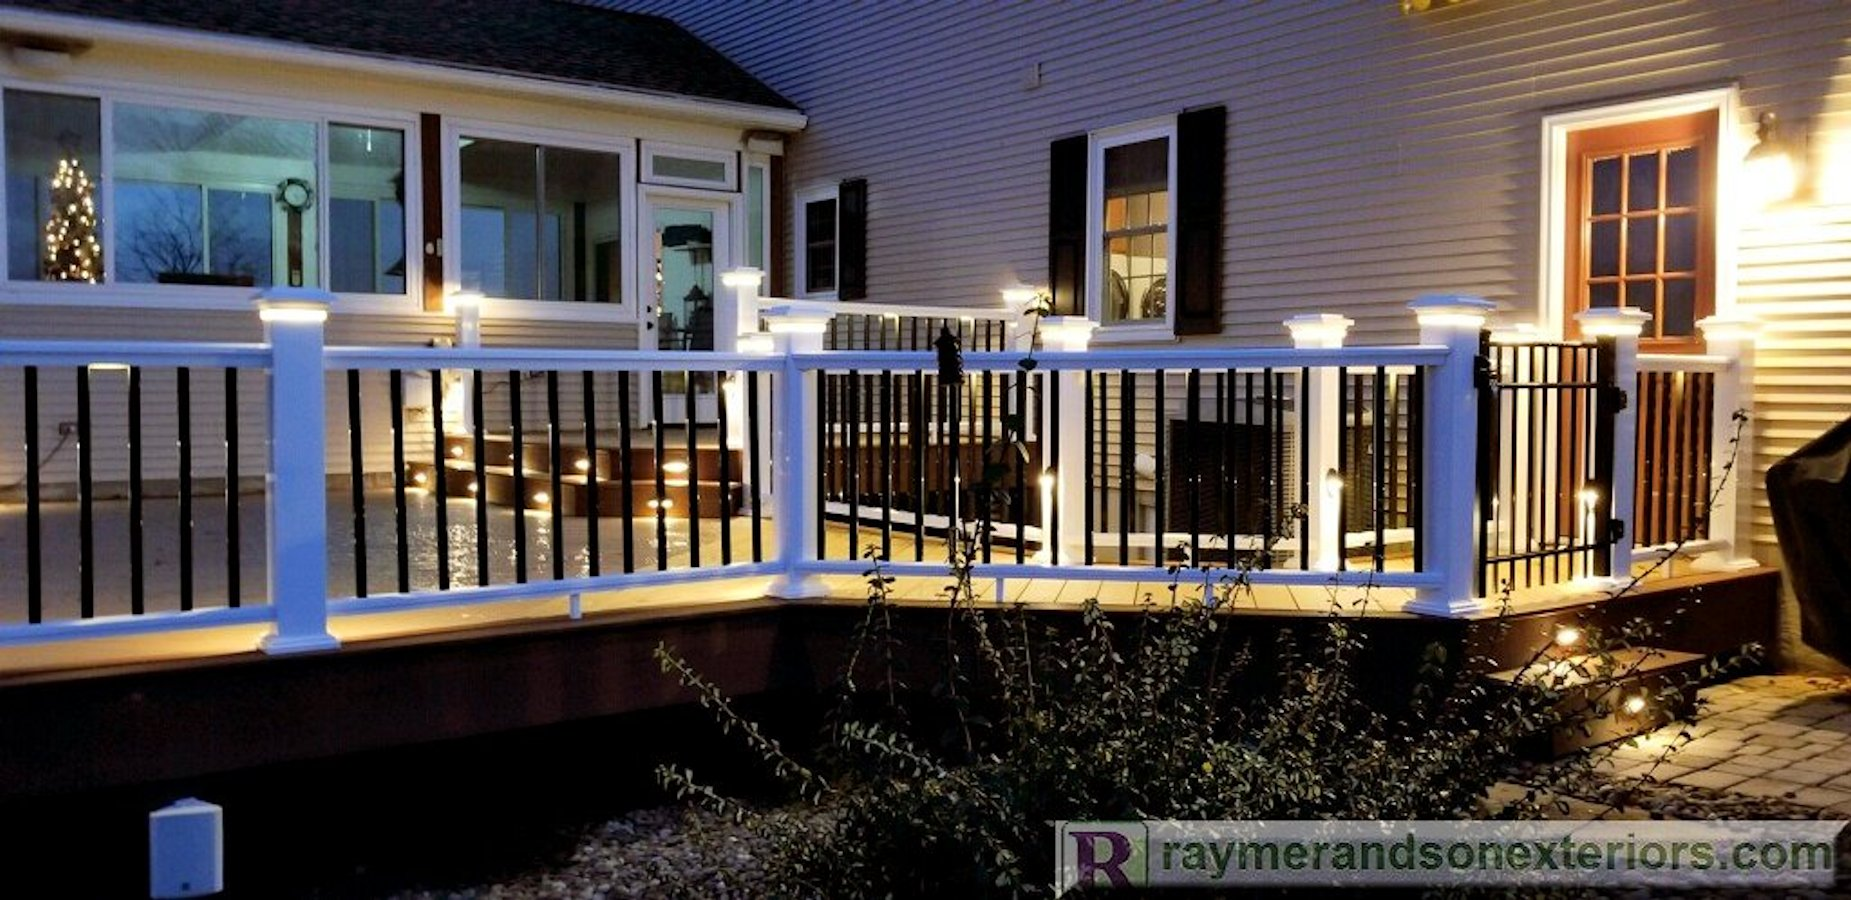 Rsxeteriors-Azek-Vinyl-Deck-LED-Lights-Turbotville-Pennsylvania-12